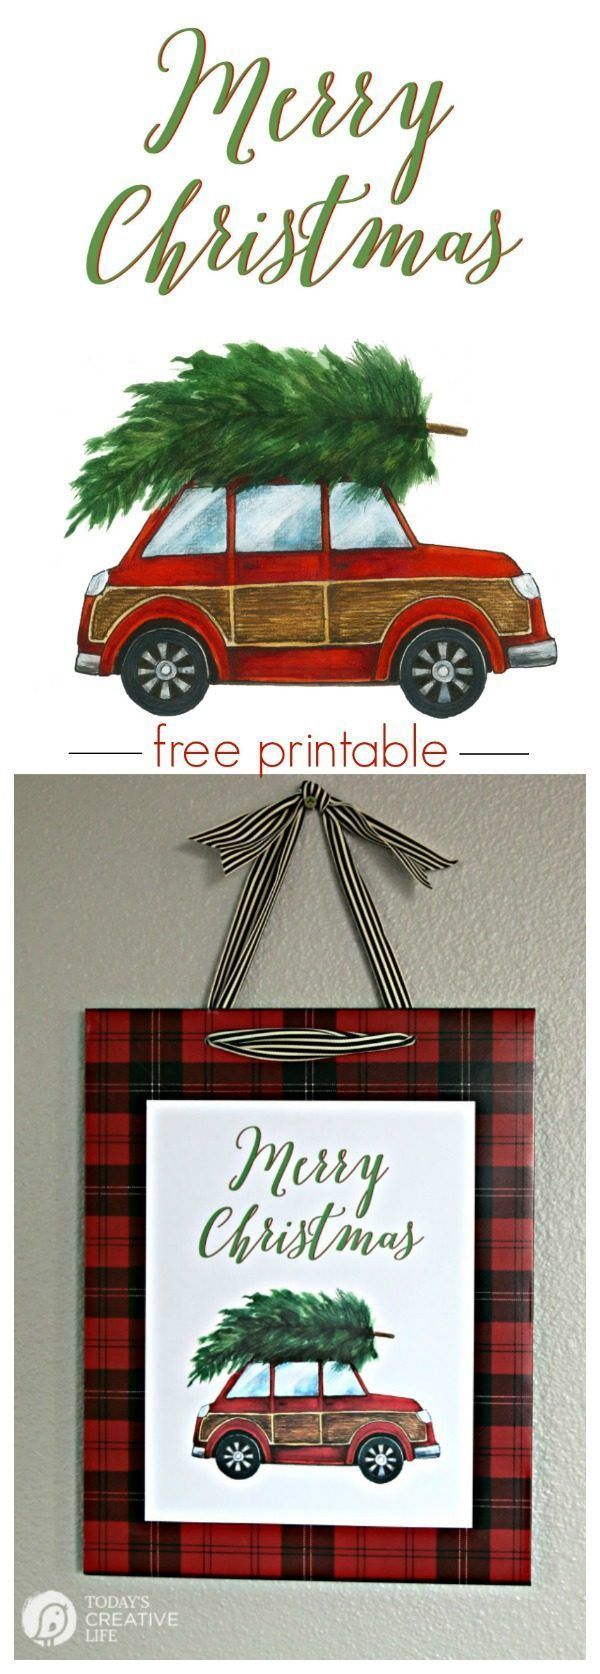 Easy Diy Christmas Wall Decorations : Best wall christmas tree ideas only on